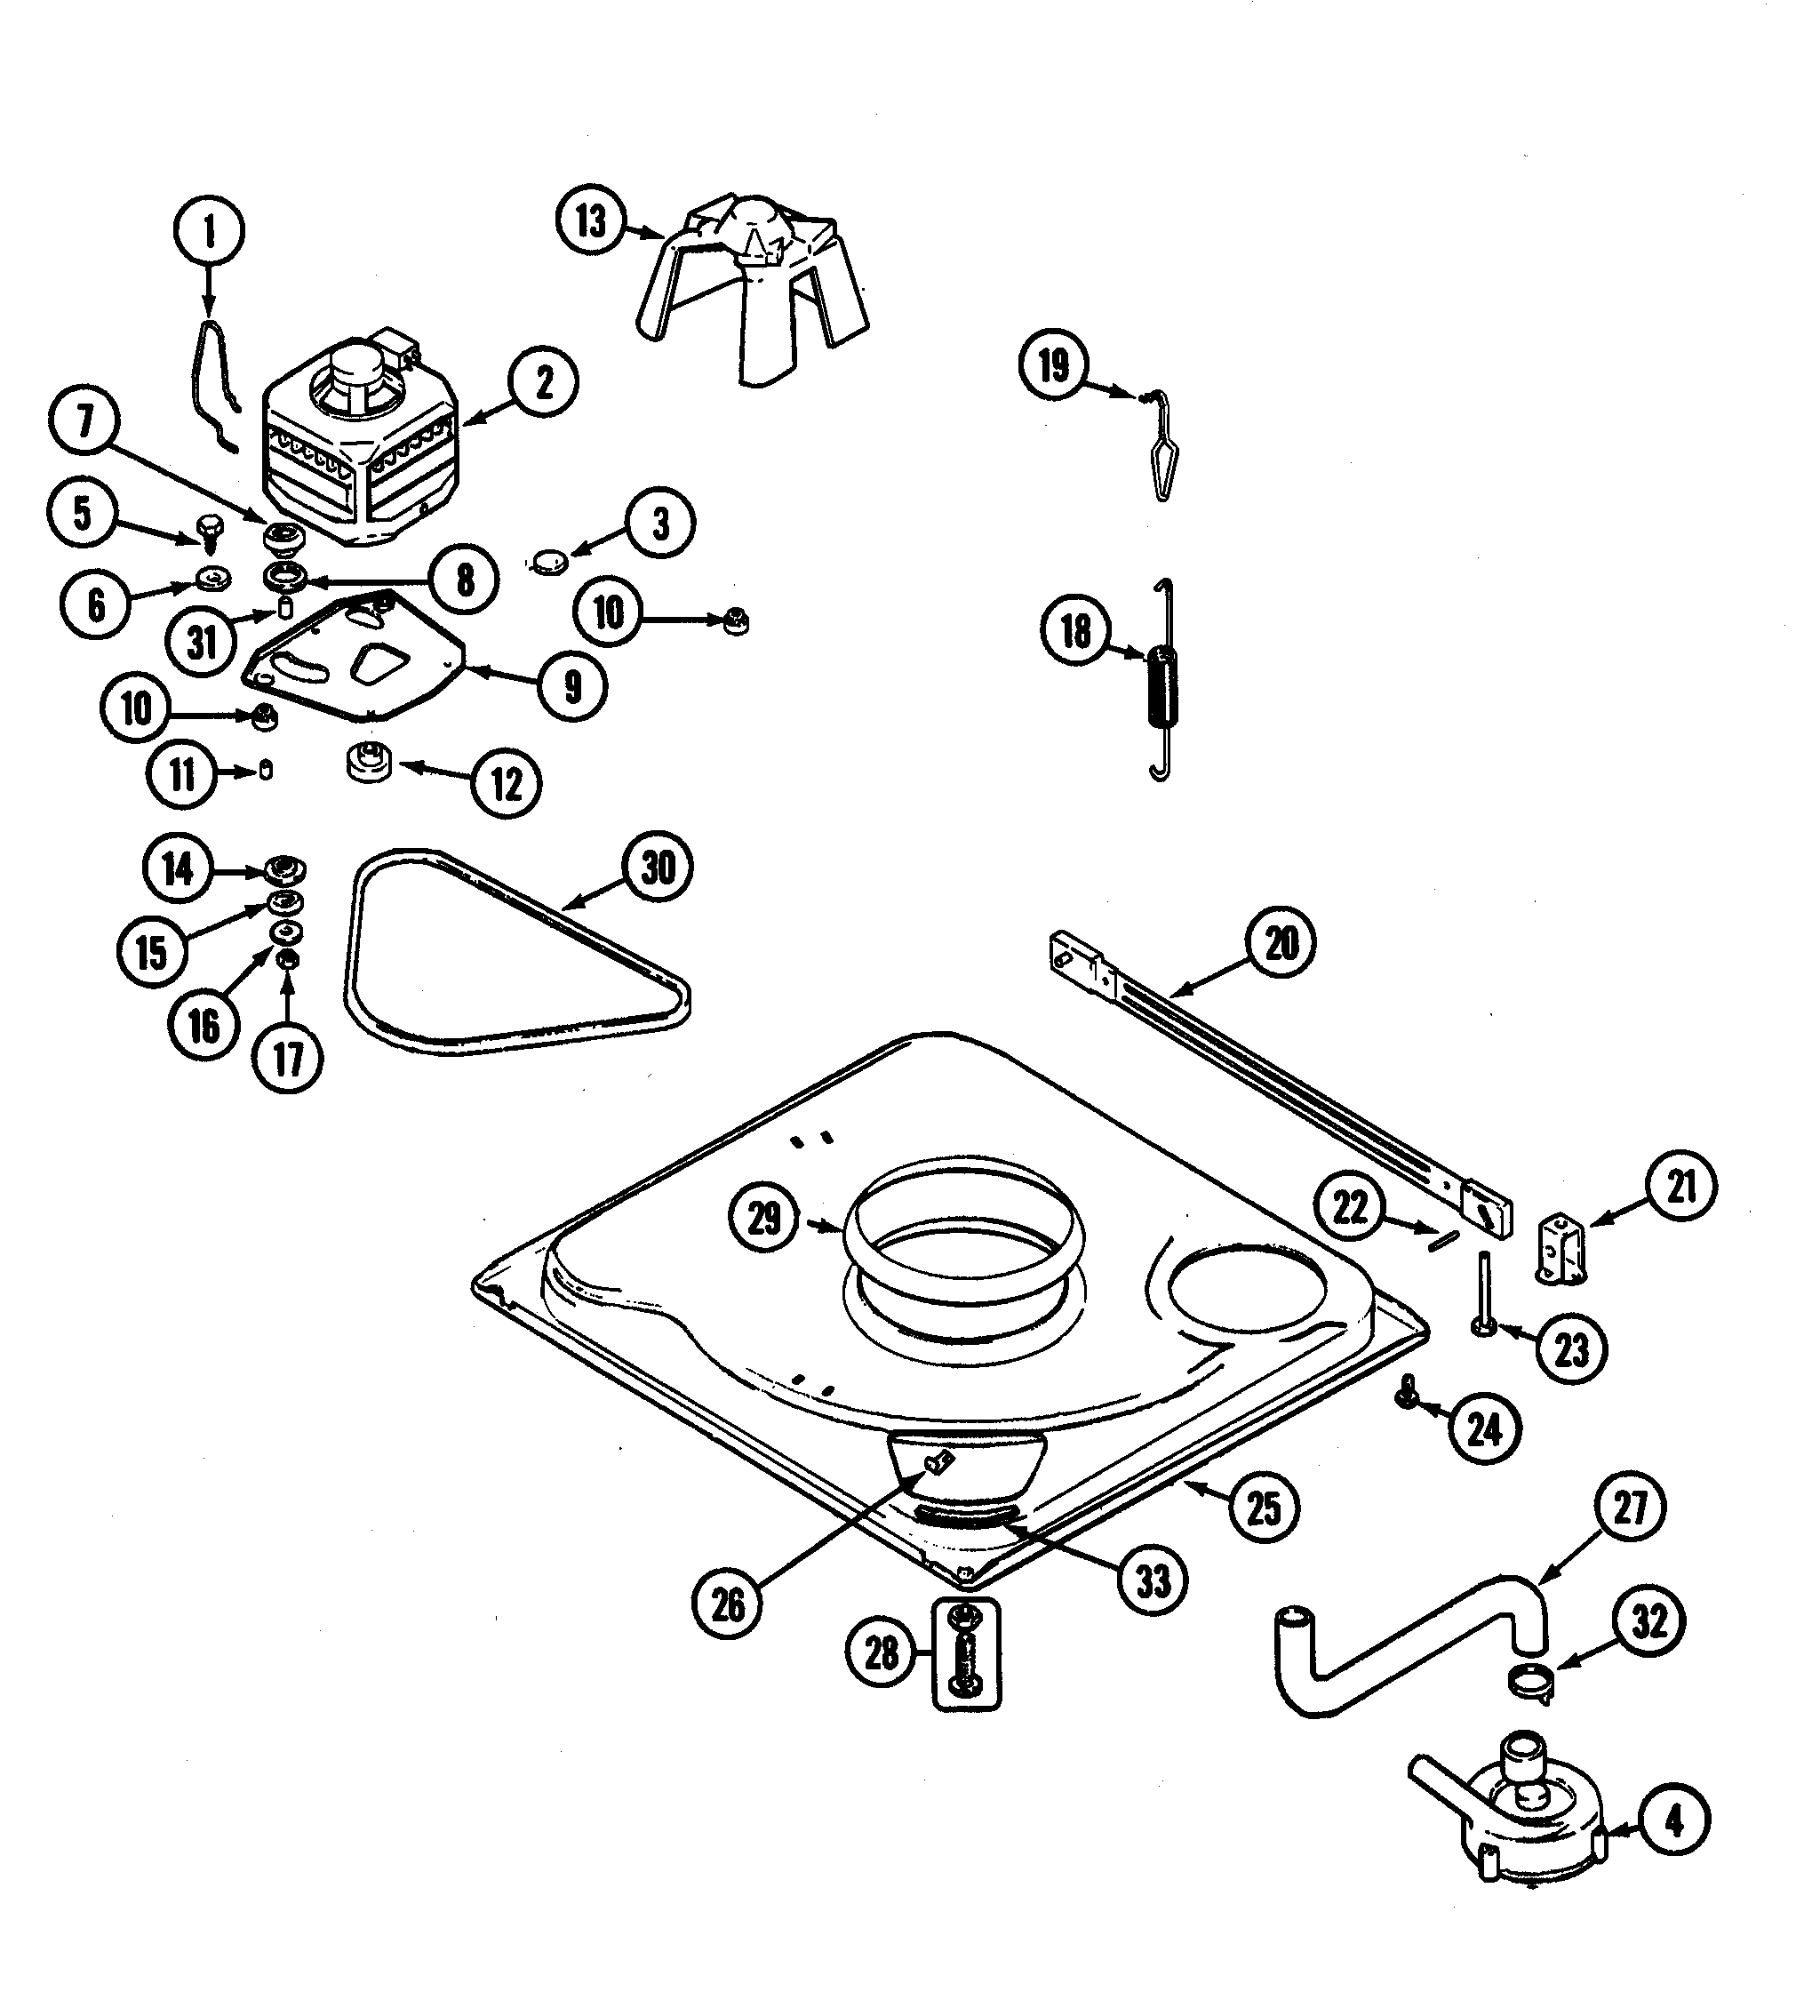 Top And Console Parts Diagram And Parts List For Maytag Dryerparts